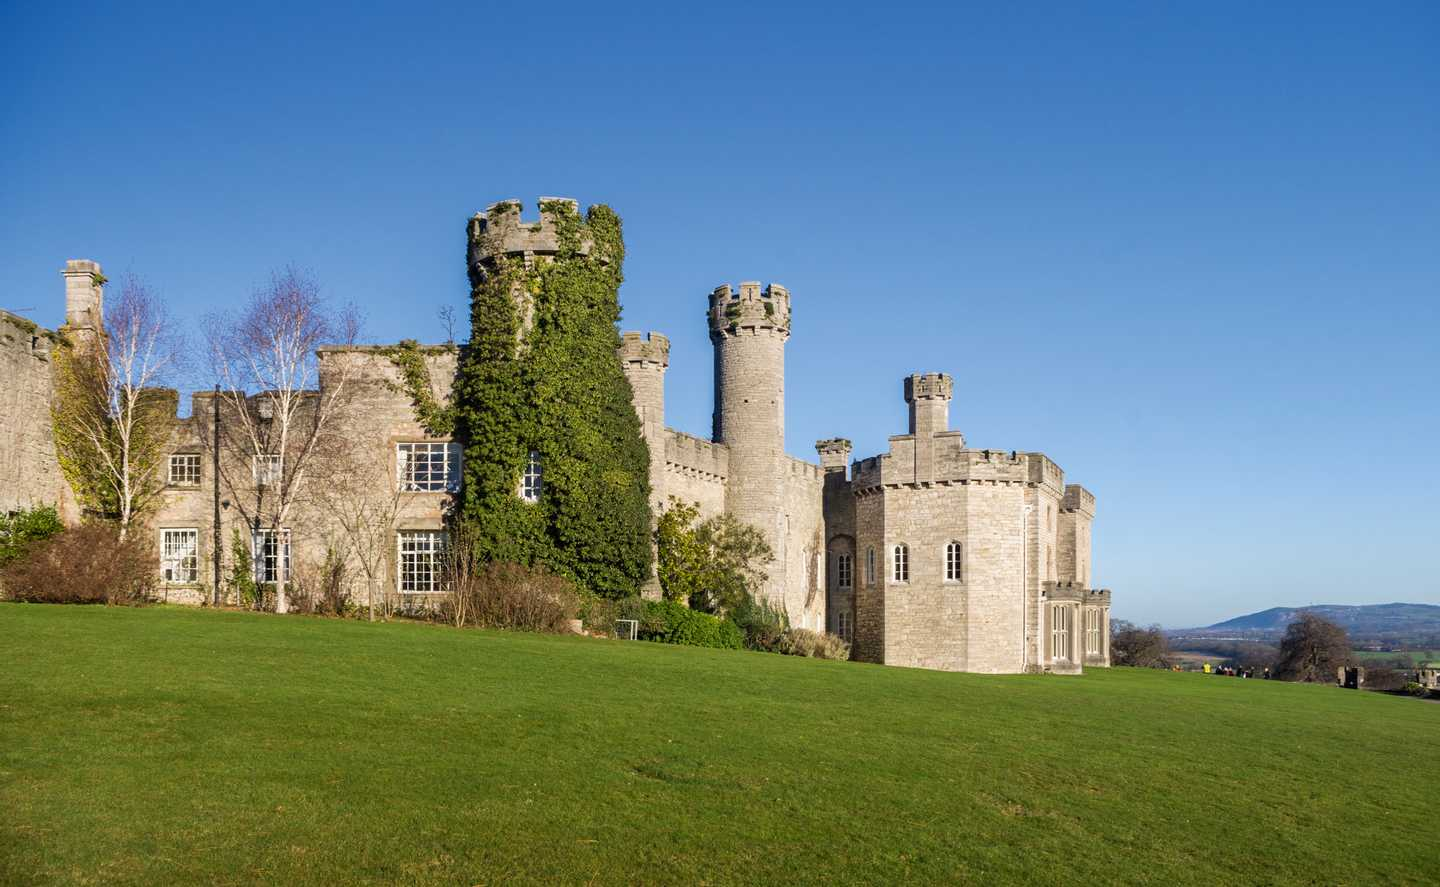 Exterior view of Bodelwyddan Castle